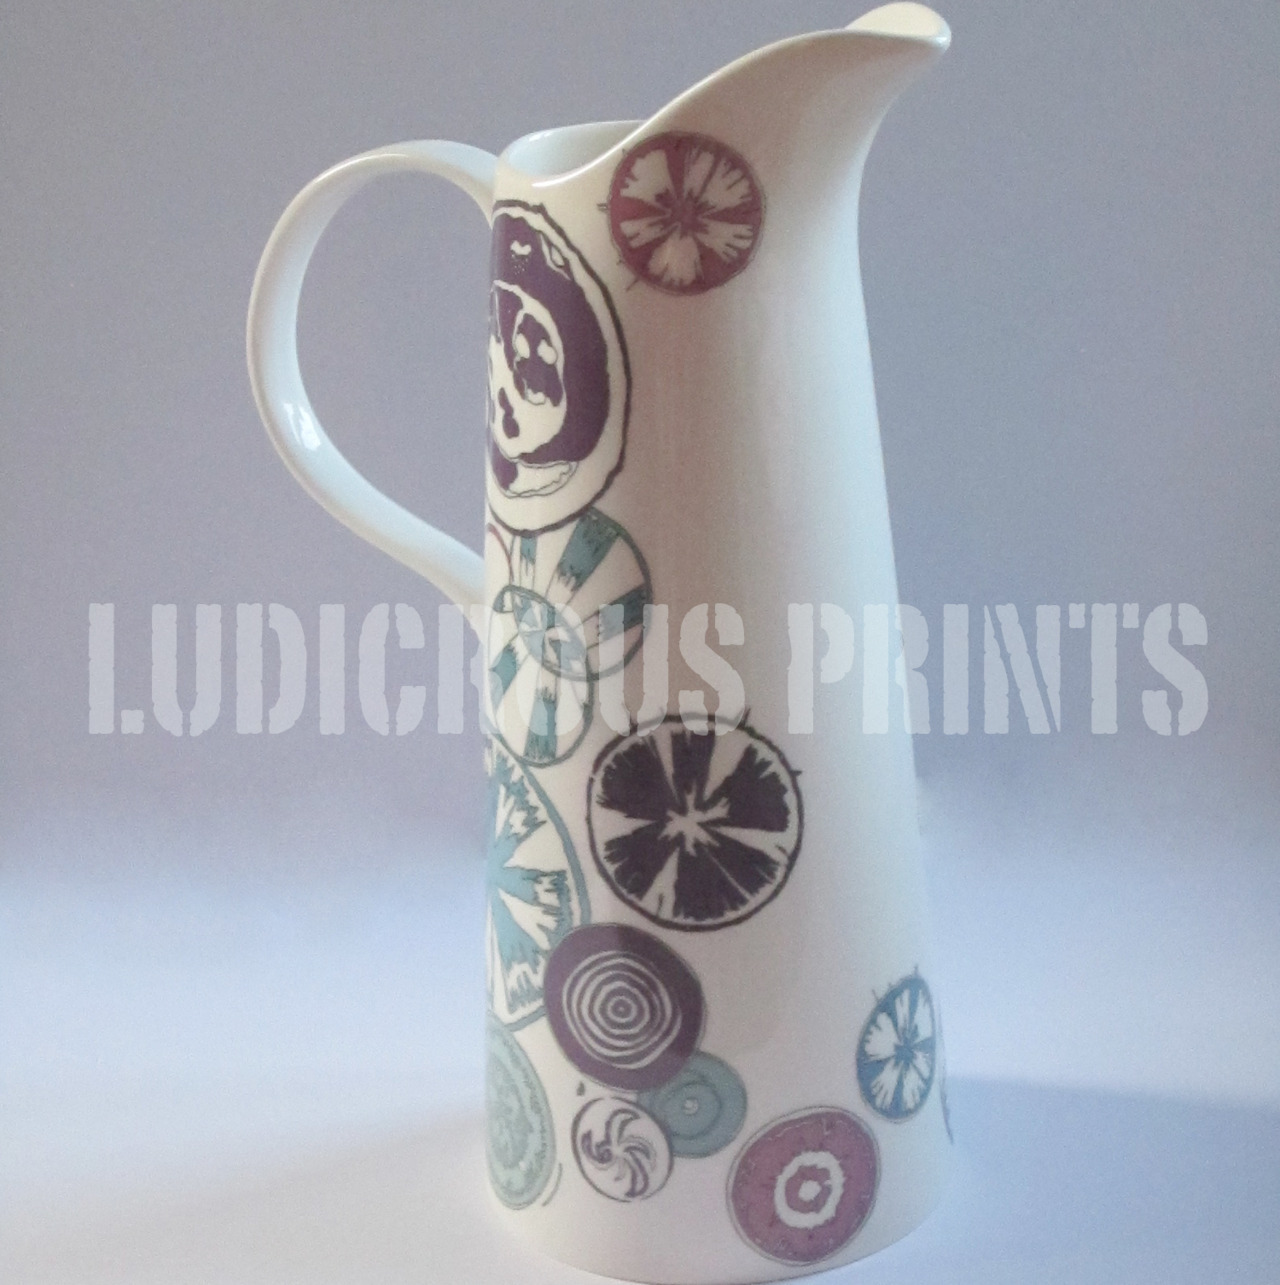 Garden Ceramics - Copyright Ludicrous Prints Inspired by garden pond life I have created this jug/ vase using my drawings and ceramic decals.